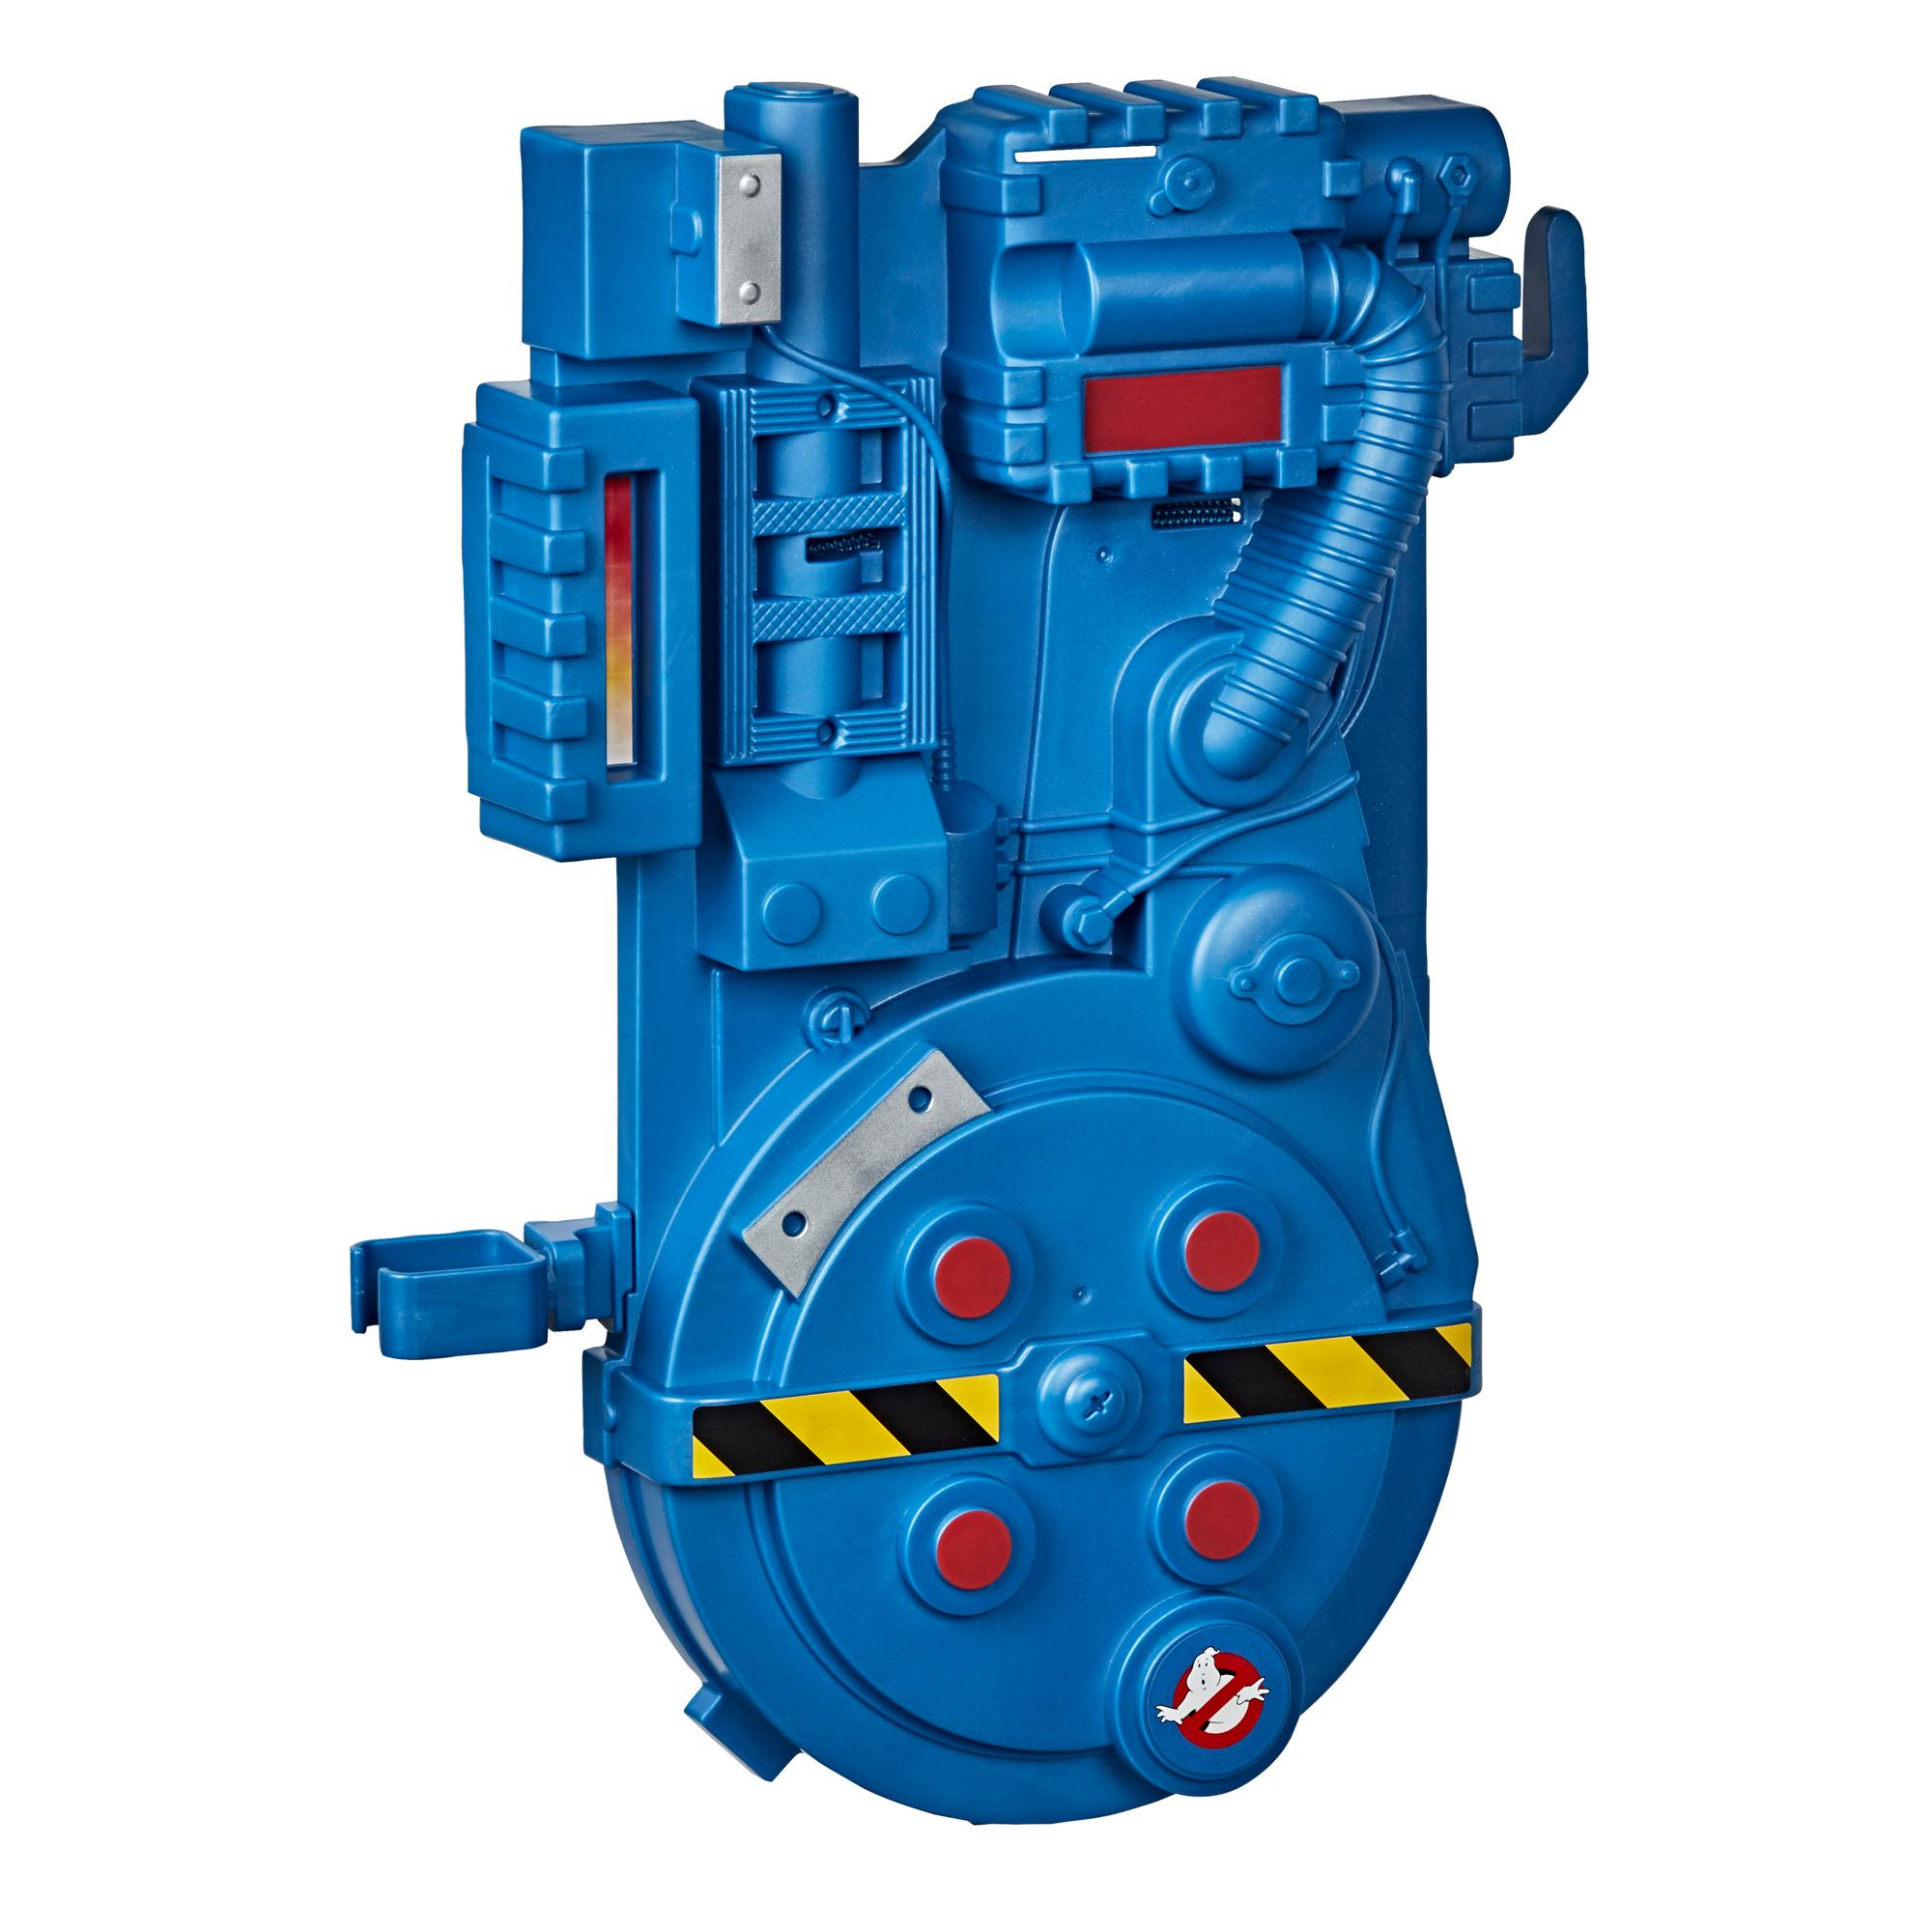 Ghostbusters Movie Proton Pack Roleplay Toy Cosplay Classic Blue Gear for kids